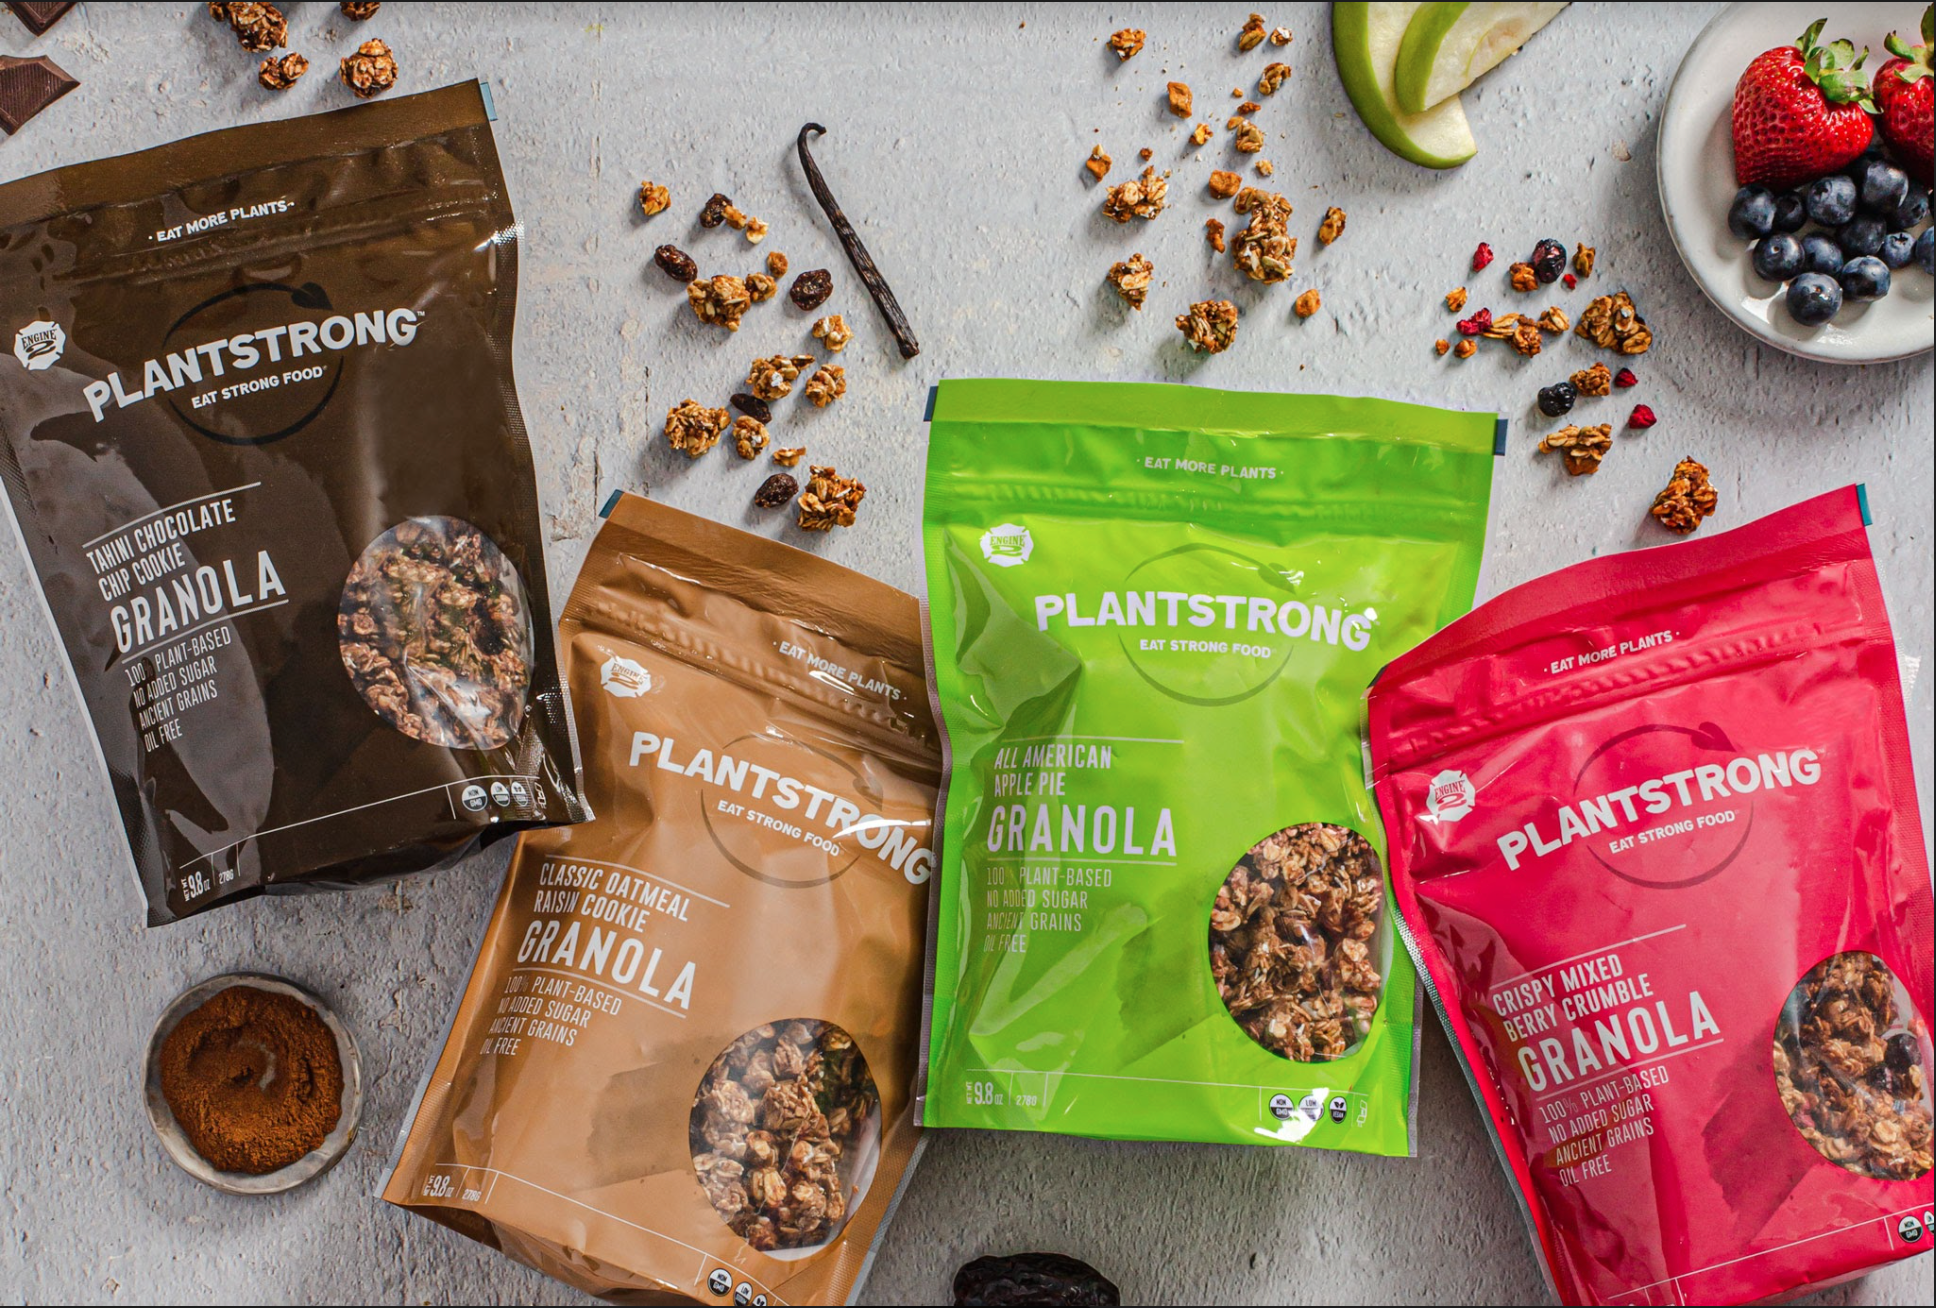 Introducing the all new PLANTSTRONG Foods